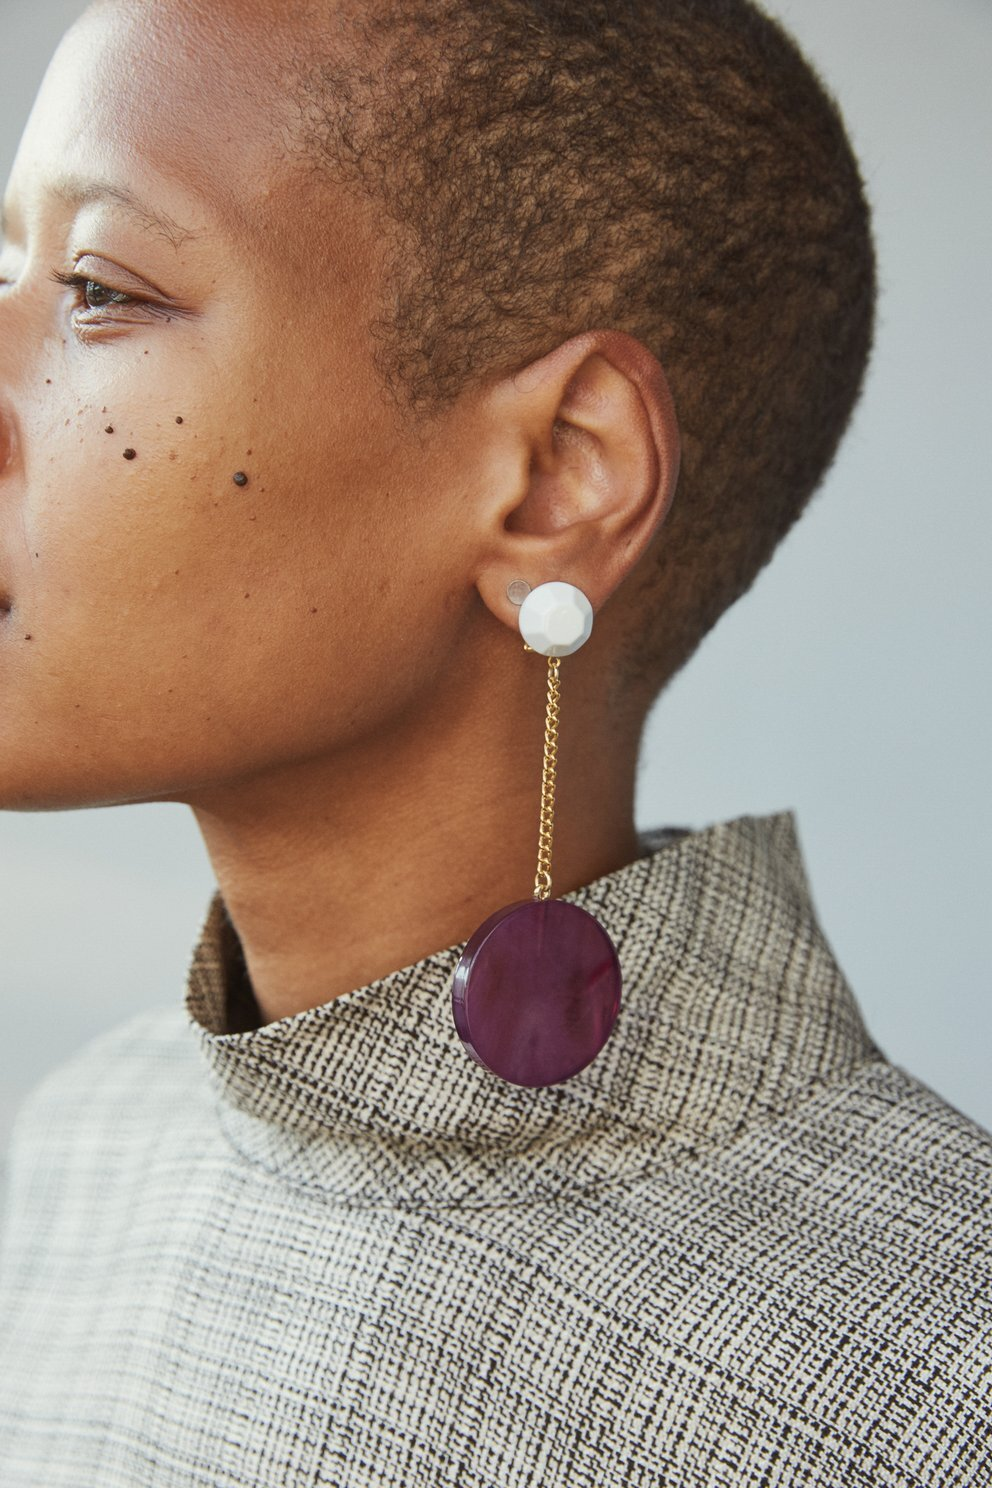 Rachel Comey - Pendulum Earrings / $160Ah, Rachel Comey, you've done it again. These timeless earrings are the perfect balance of modern elegance and simplicity while providing just a baby burst of color to any outfit.